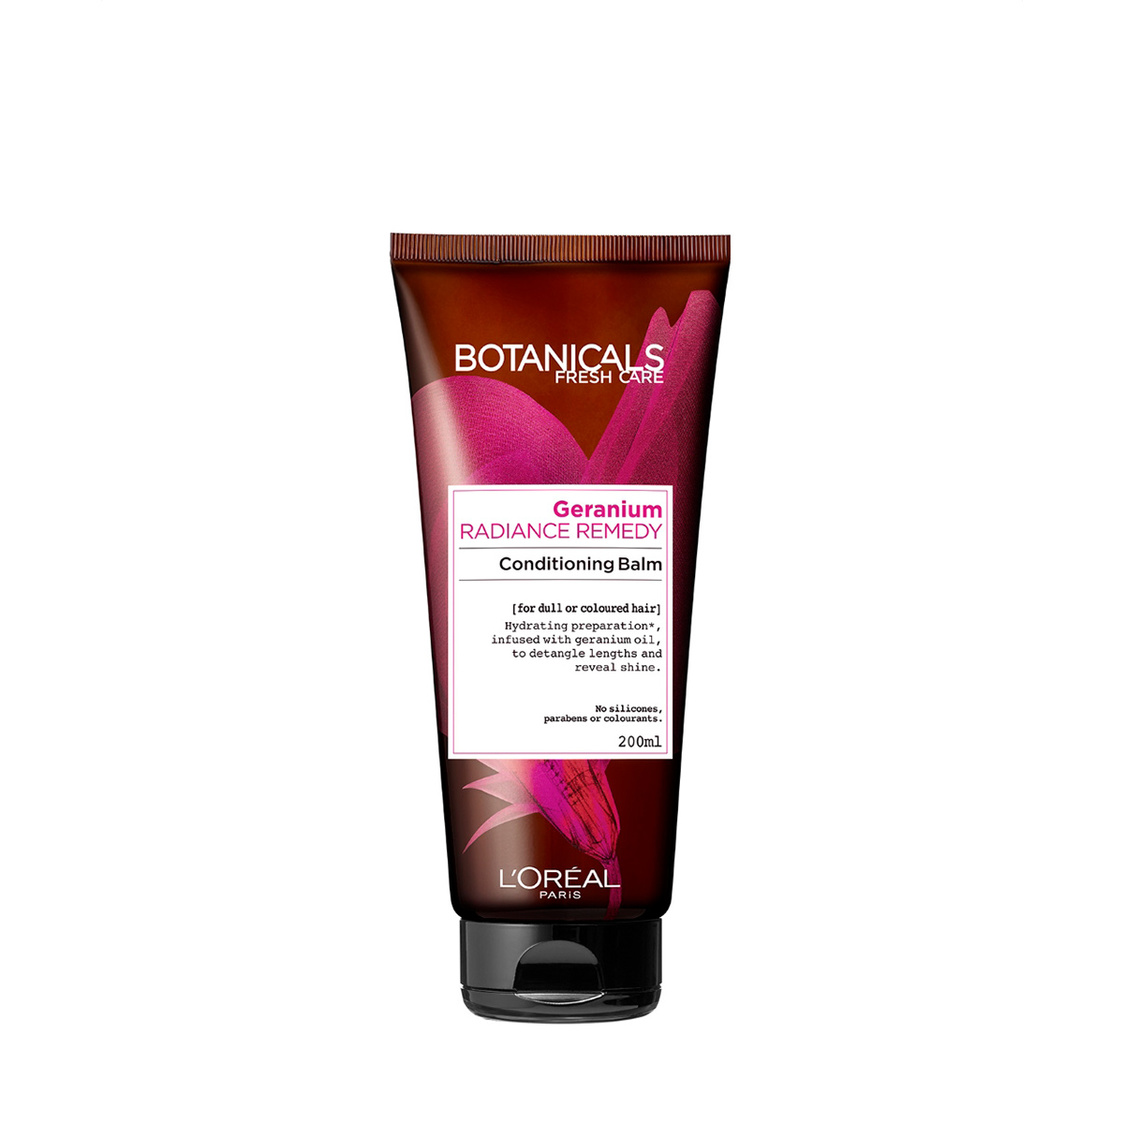 Botanicals Geranium Radiance Remedy Conditioner 200ml